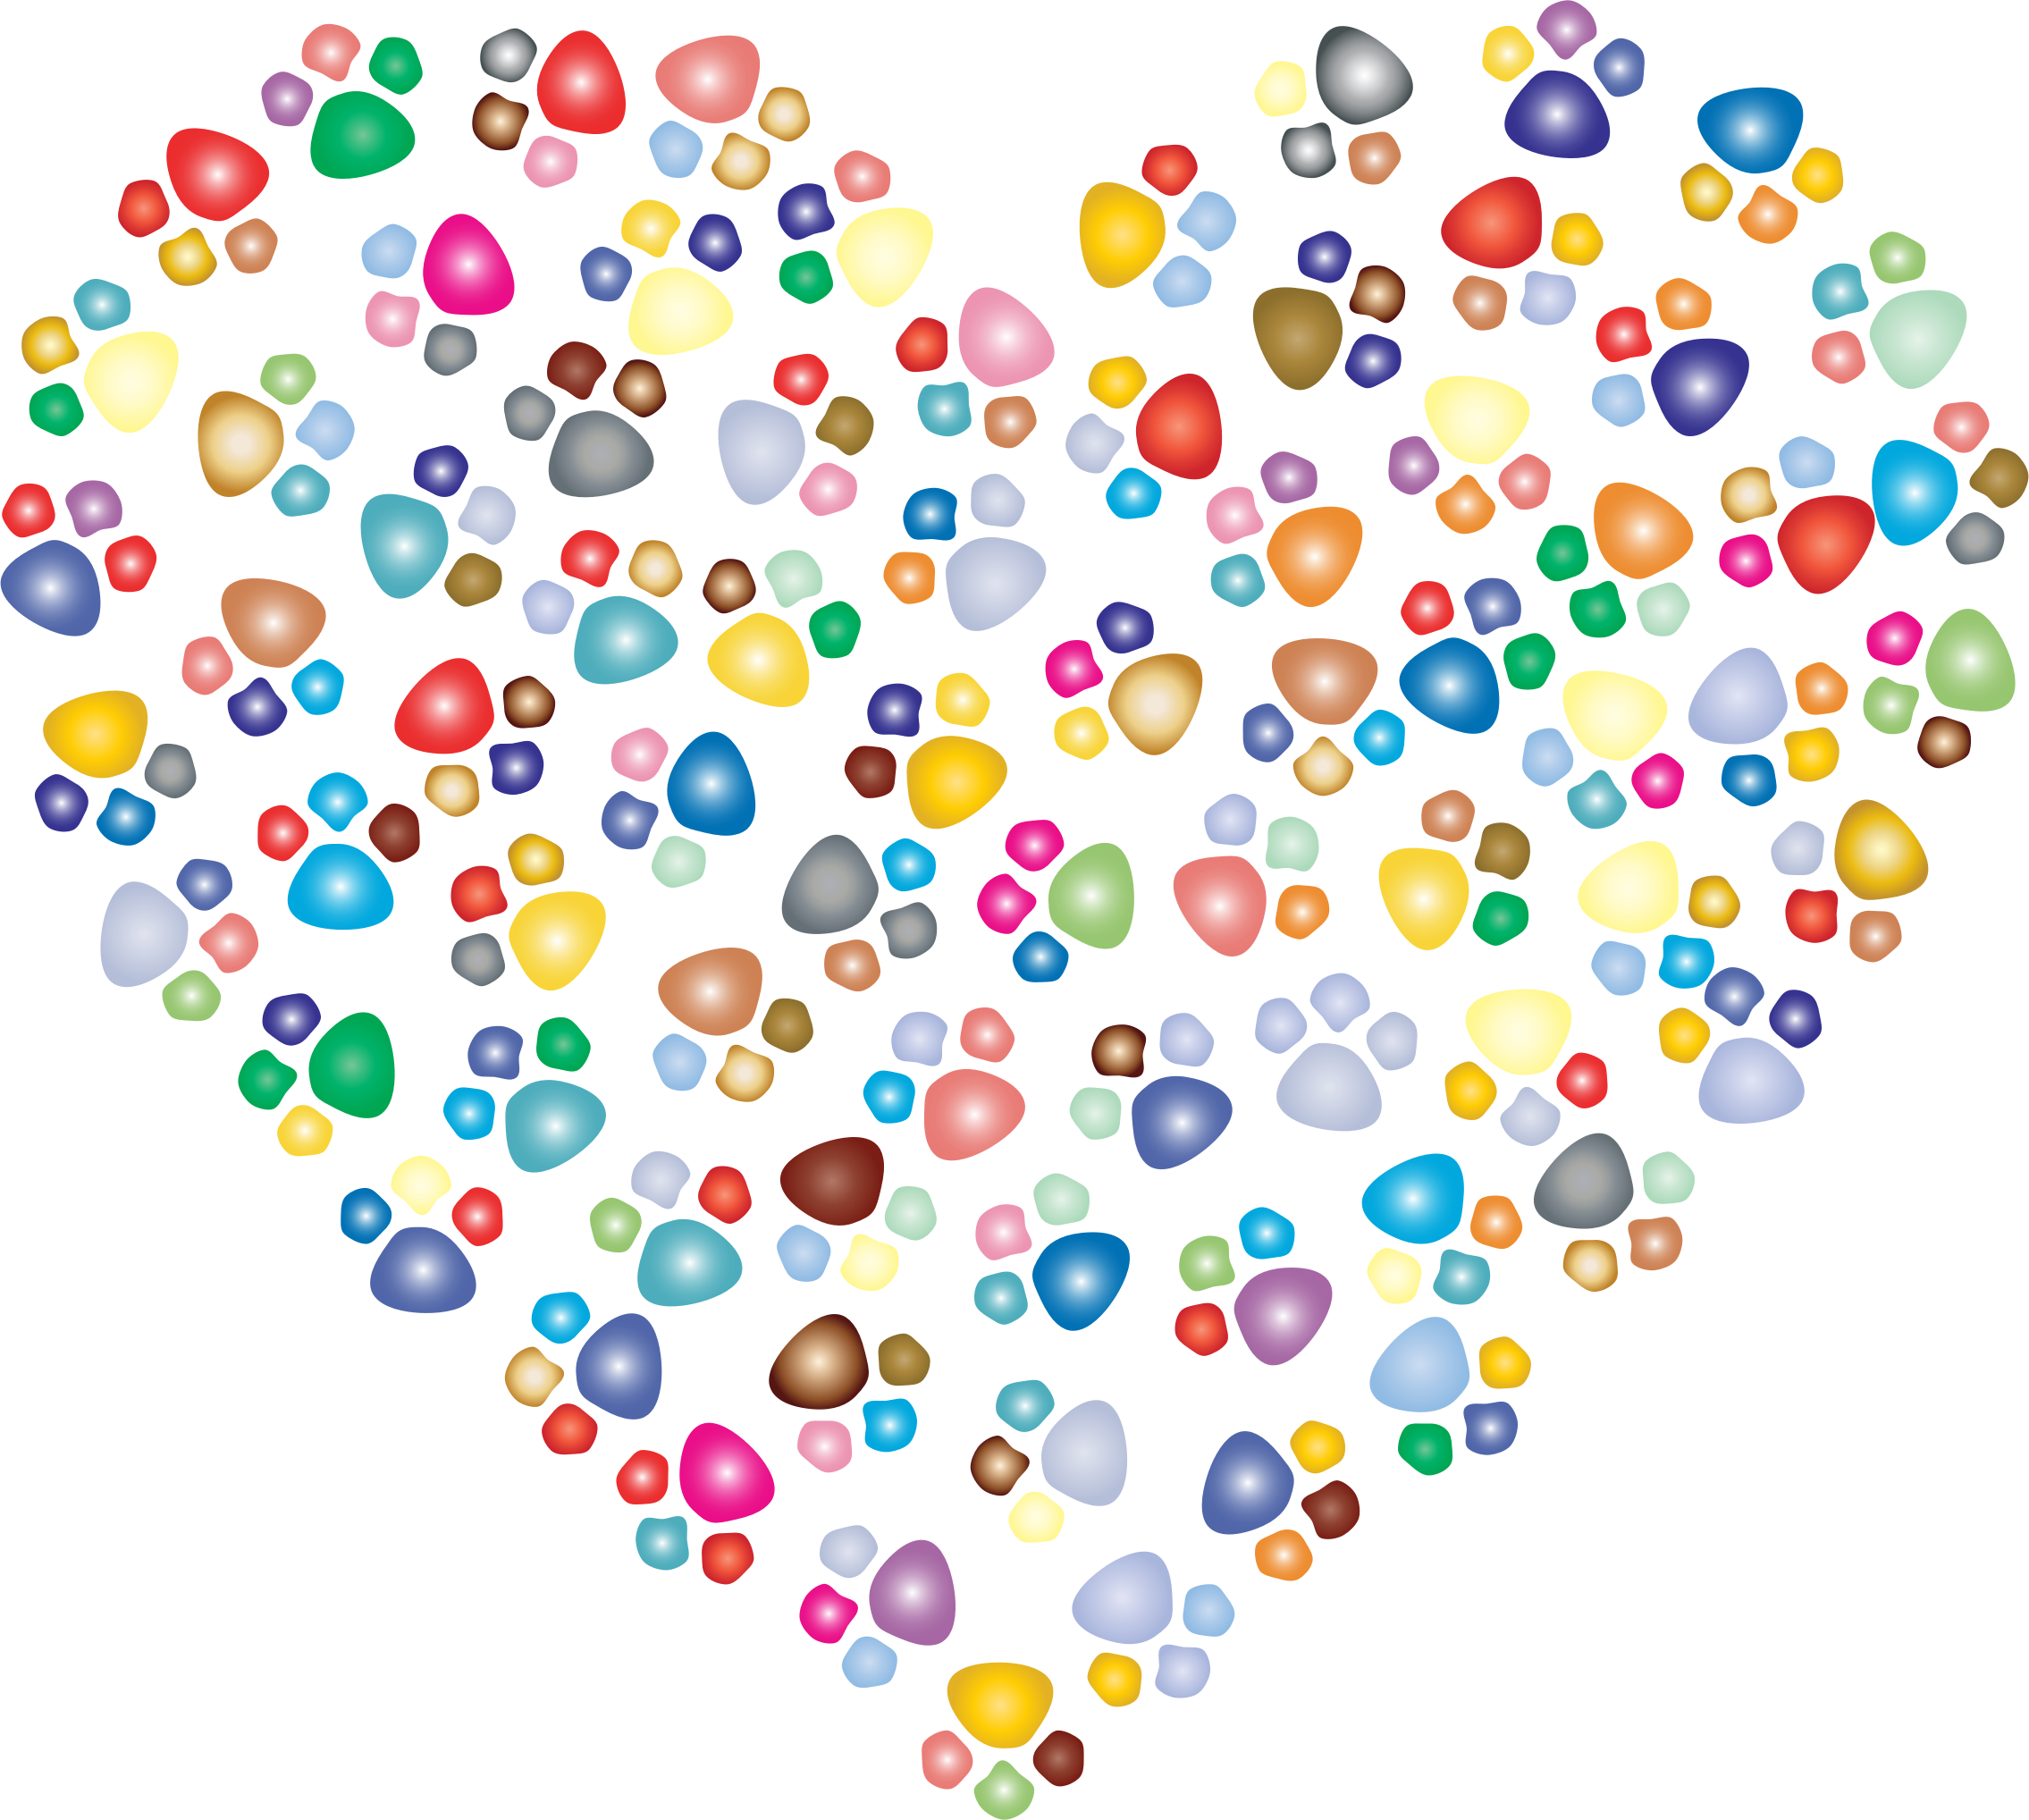 Paw print heart clipart png royalty free Clipart - Prismatic Paw Prints Heart 3 png royalty free